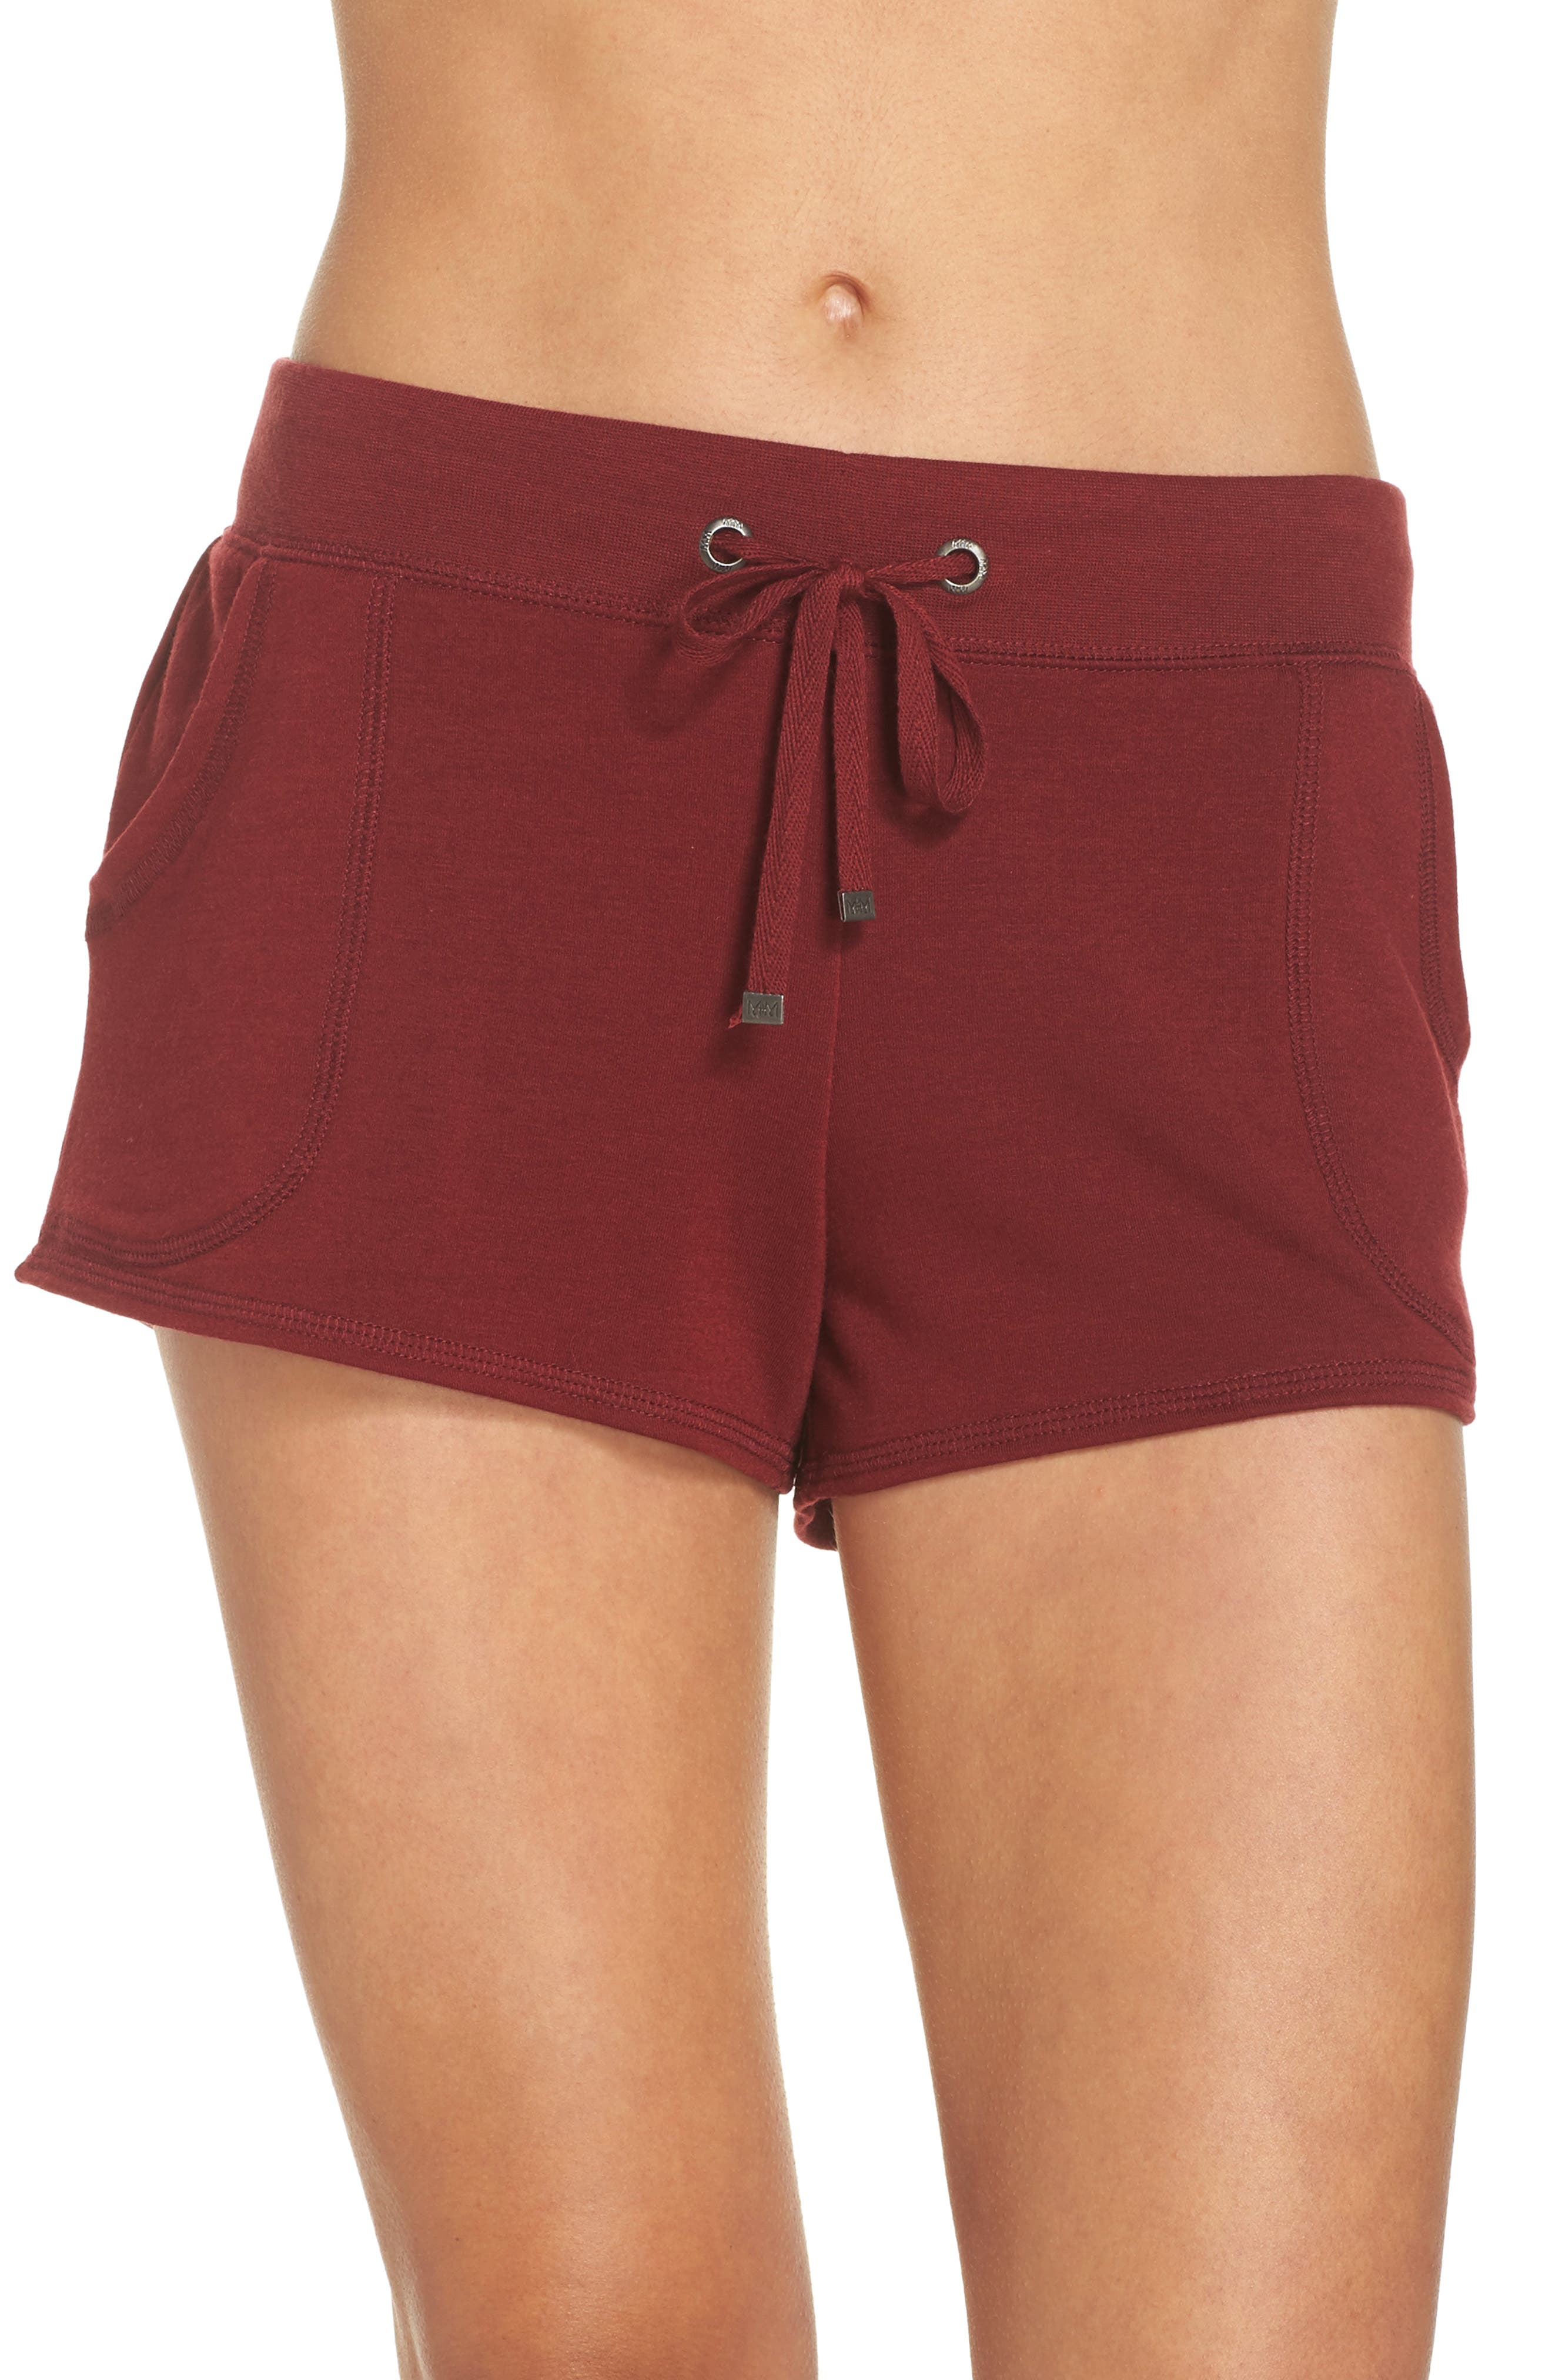 Down To The Details Lounge Shorts,                             Main thumbnail 1, color,                             Red Grape